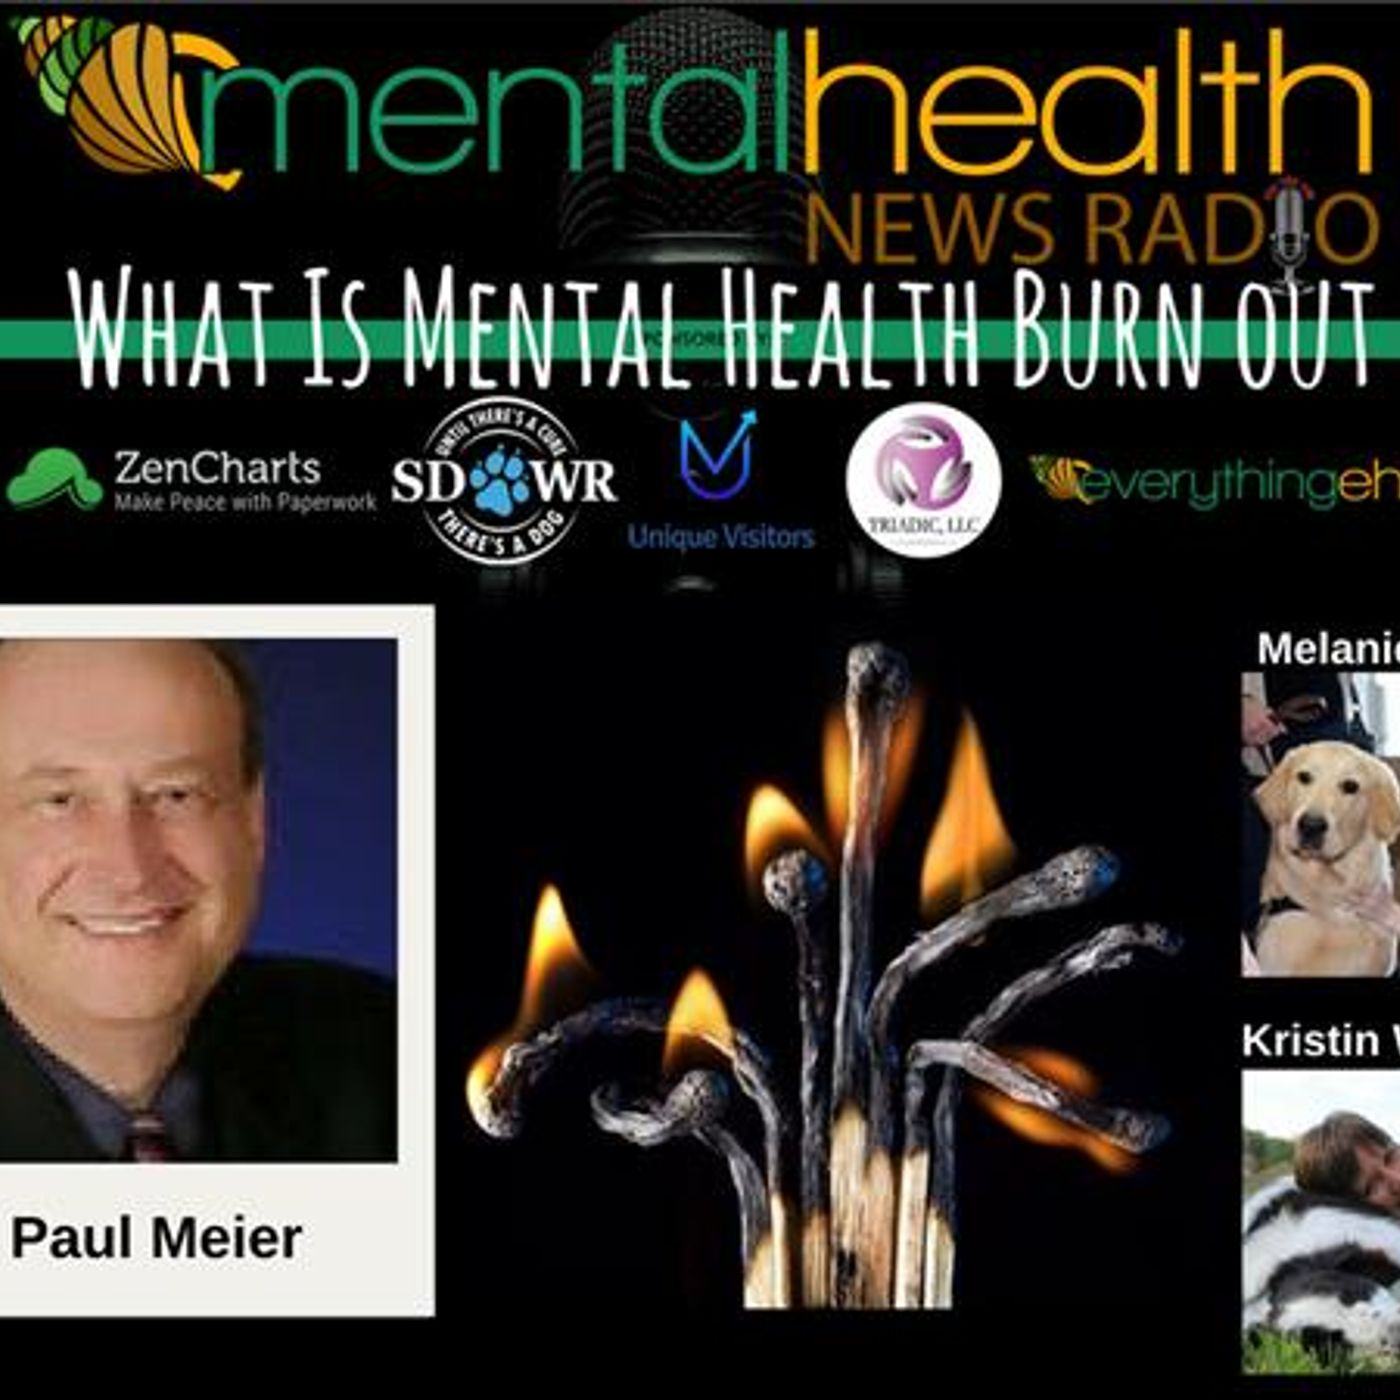 Mental Health News Radio - Round Table Discussions with Dr. Paul Meier: Surviving Burnout